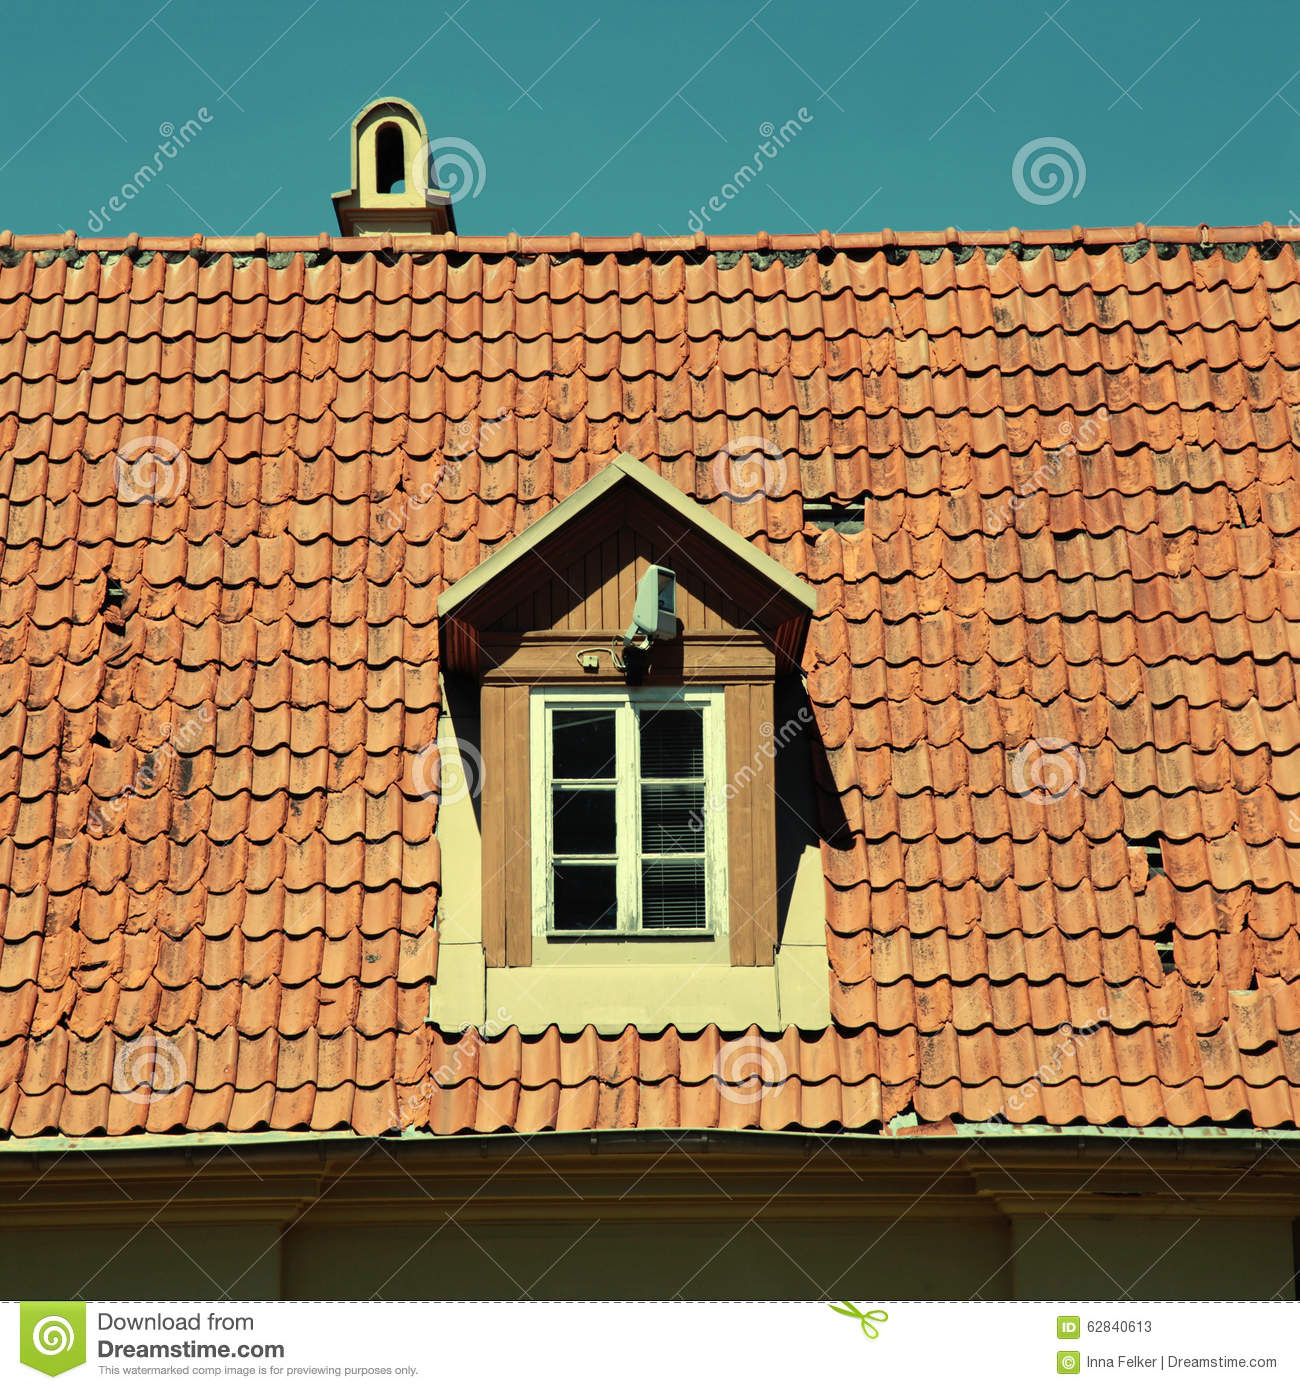 Retro red tile roof of old house stock photo image 62840613 - Houses with ceramic tile roofing ...